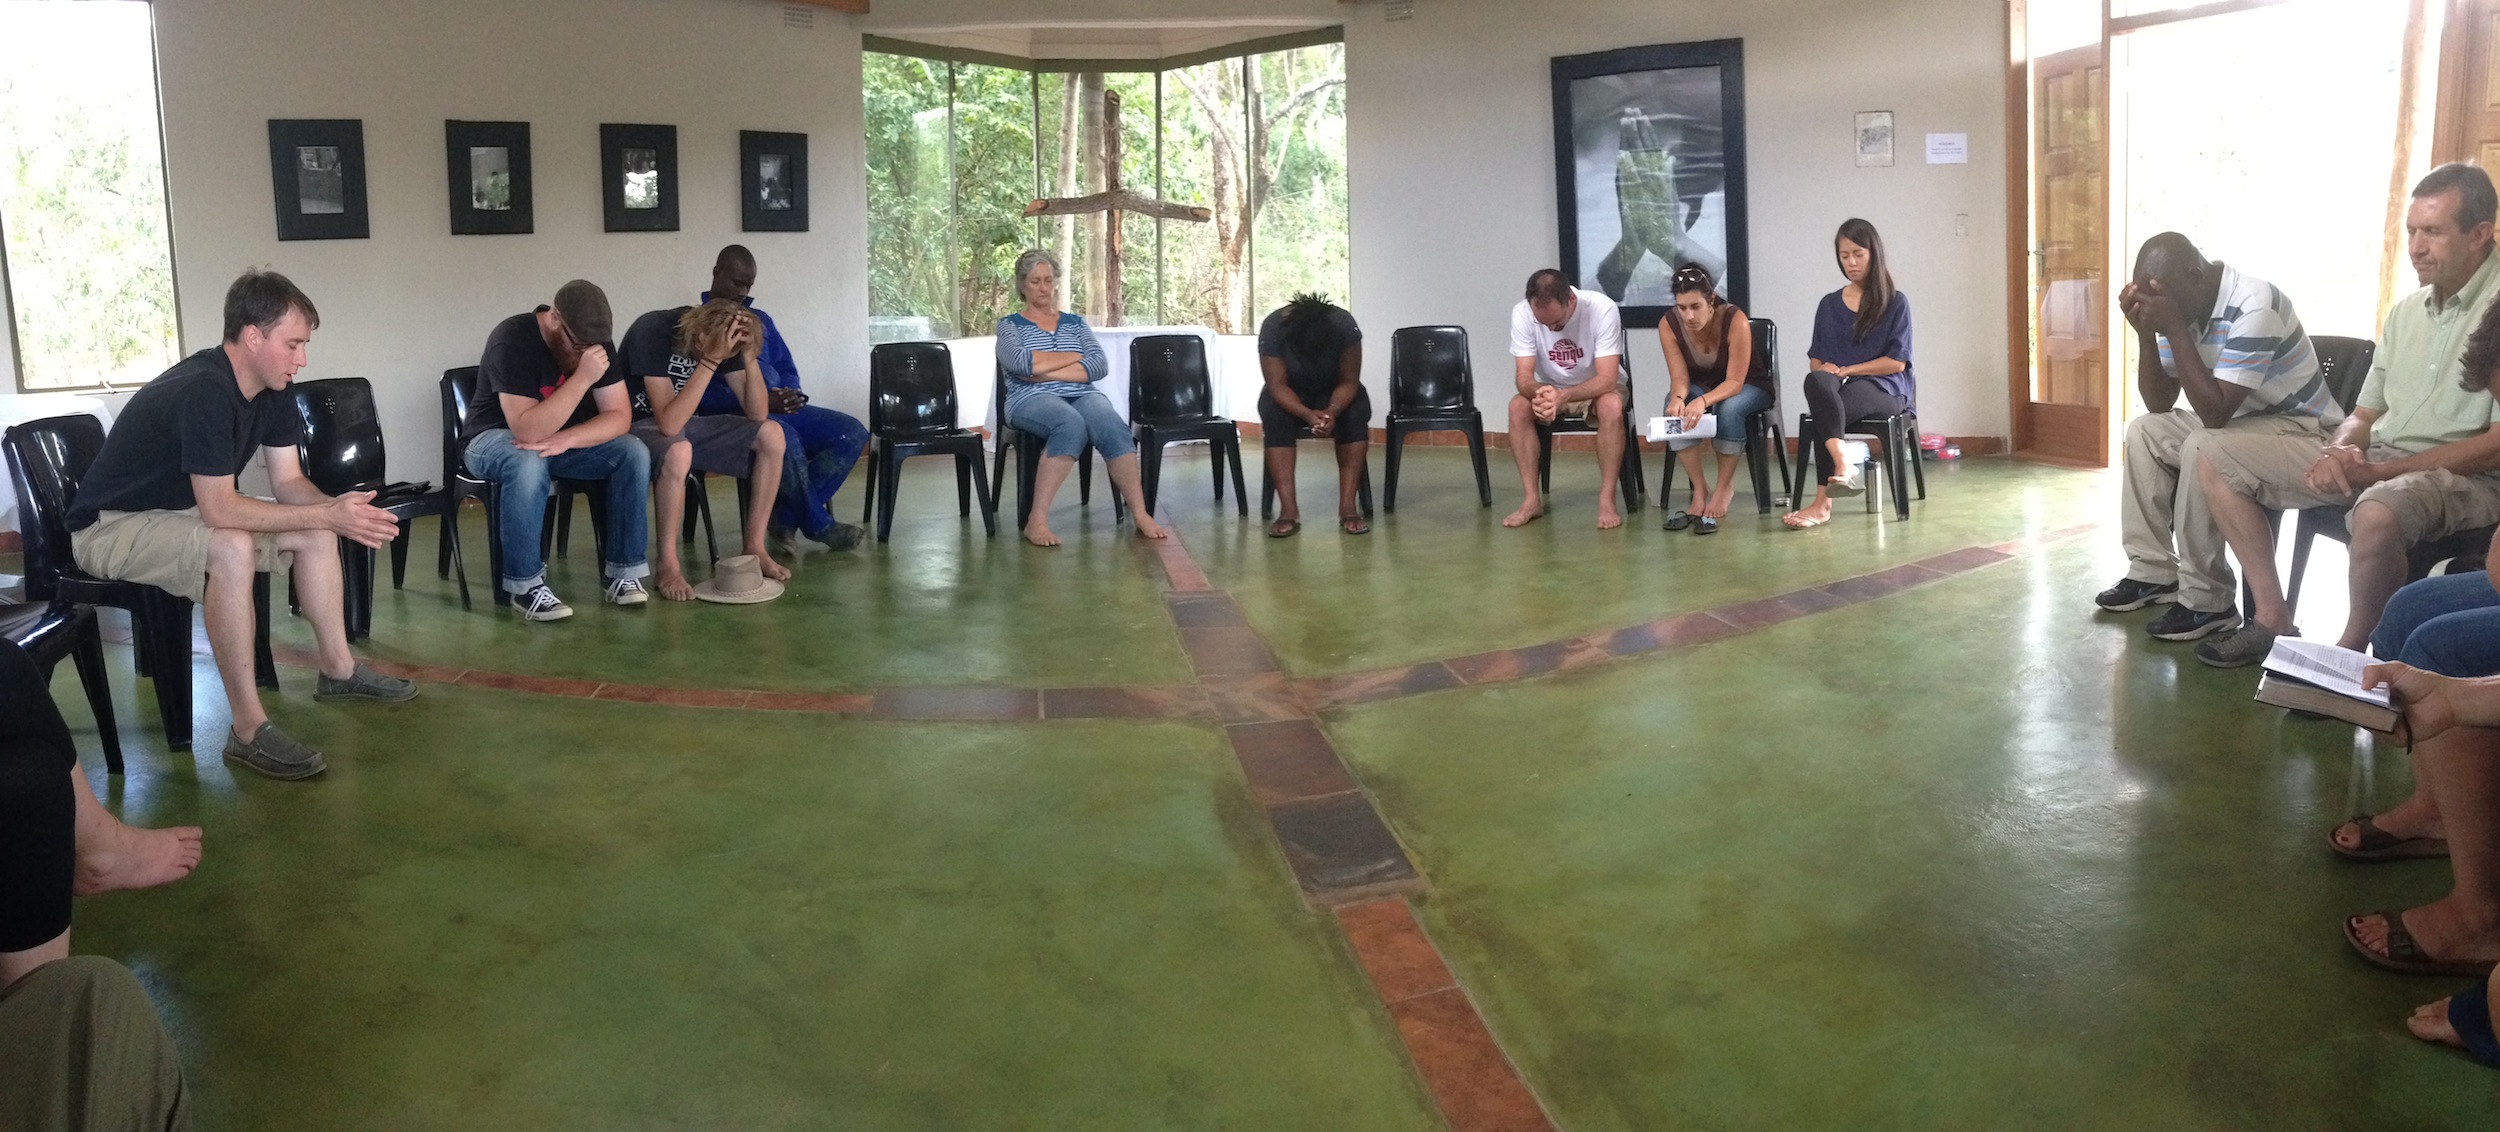 The Hands at Work Family prays together daily in the chapel at the Hub in South Africa